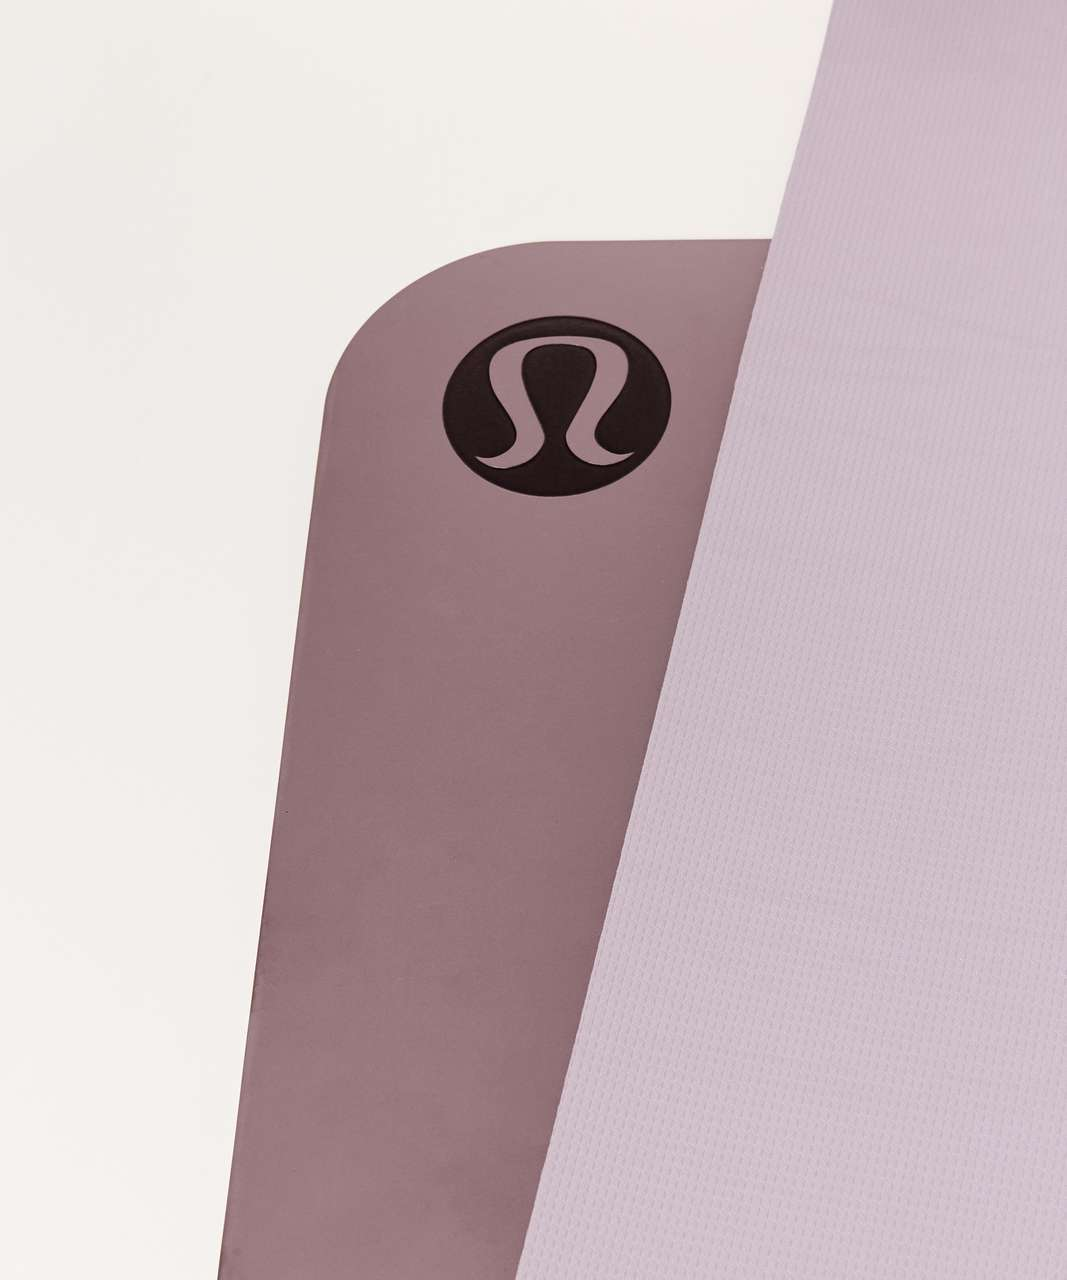 Lululemon The Reversible Mat 5mm (Taryn Toomey Collection) - Misty Mauve / Porcelain Pink